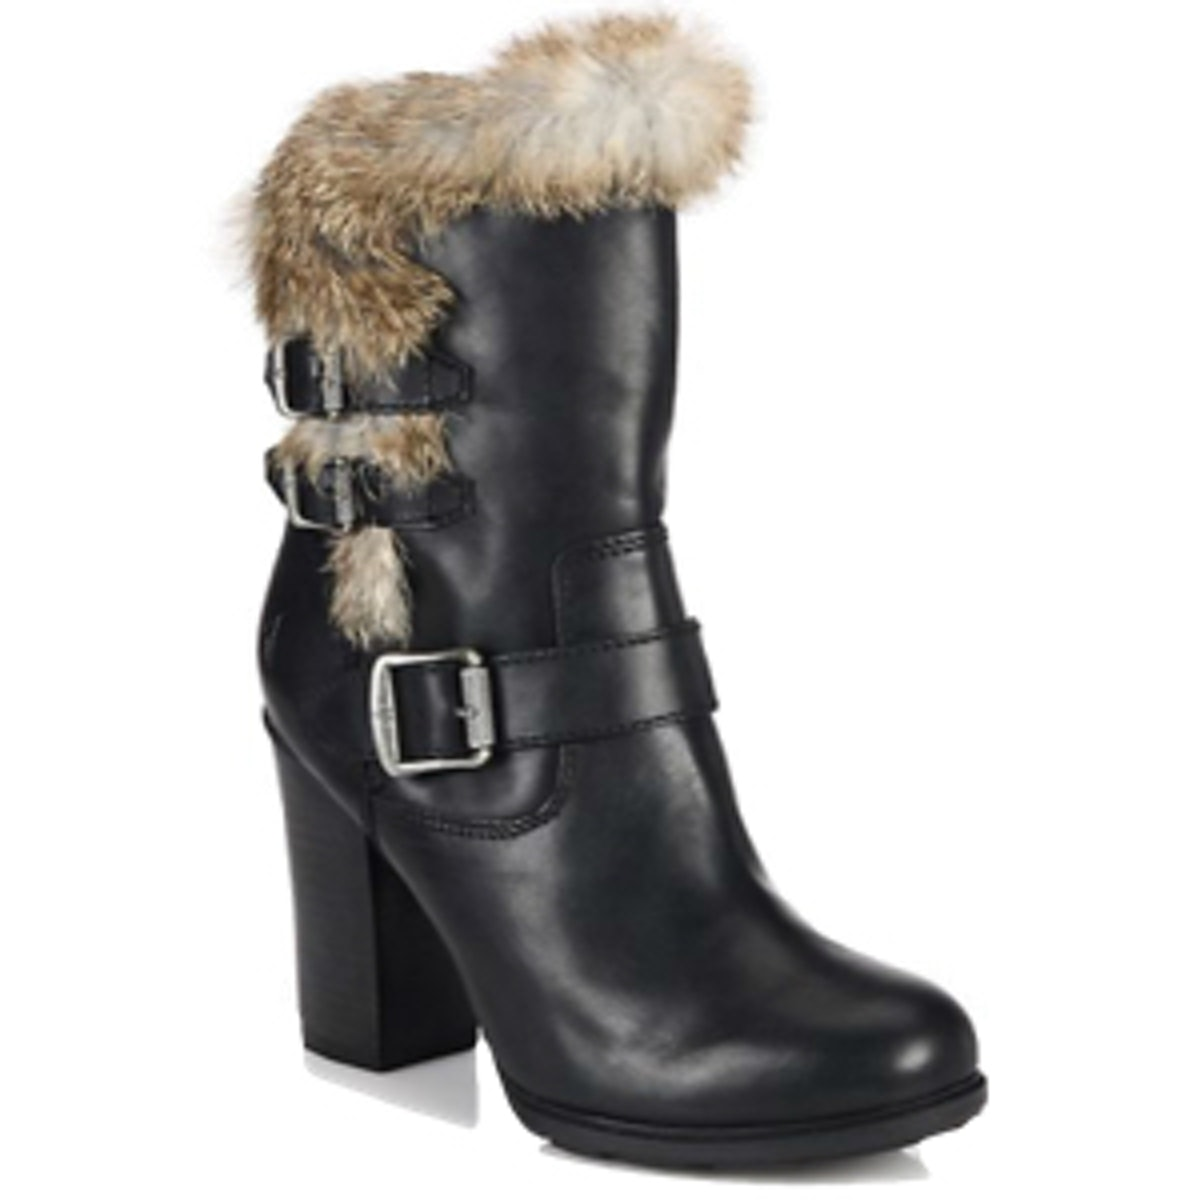 Penny Leather & Rabbit Fur Buckled Booties